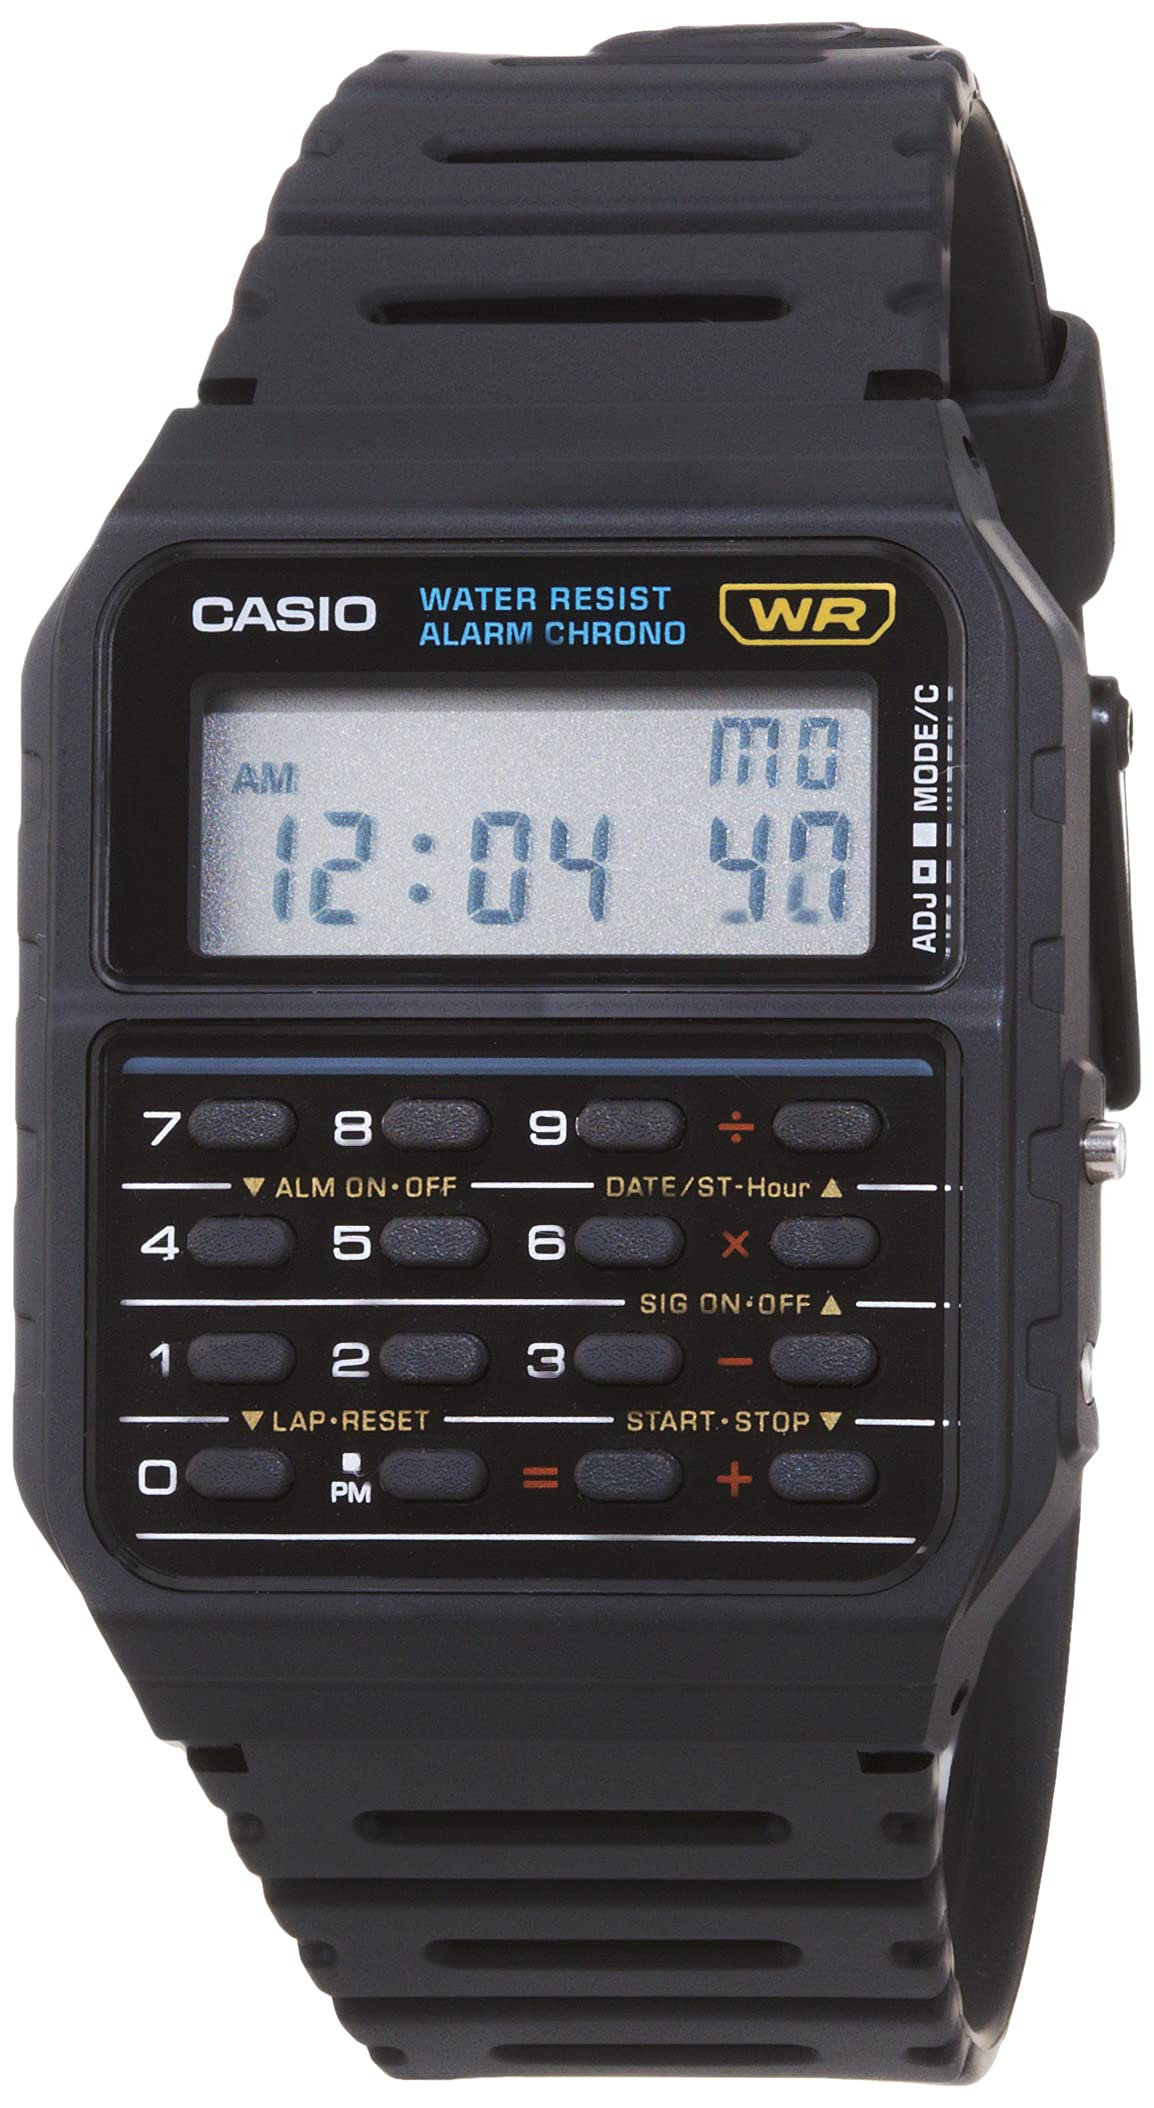 Men's Vintage CA53W-1 Calculator Watch